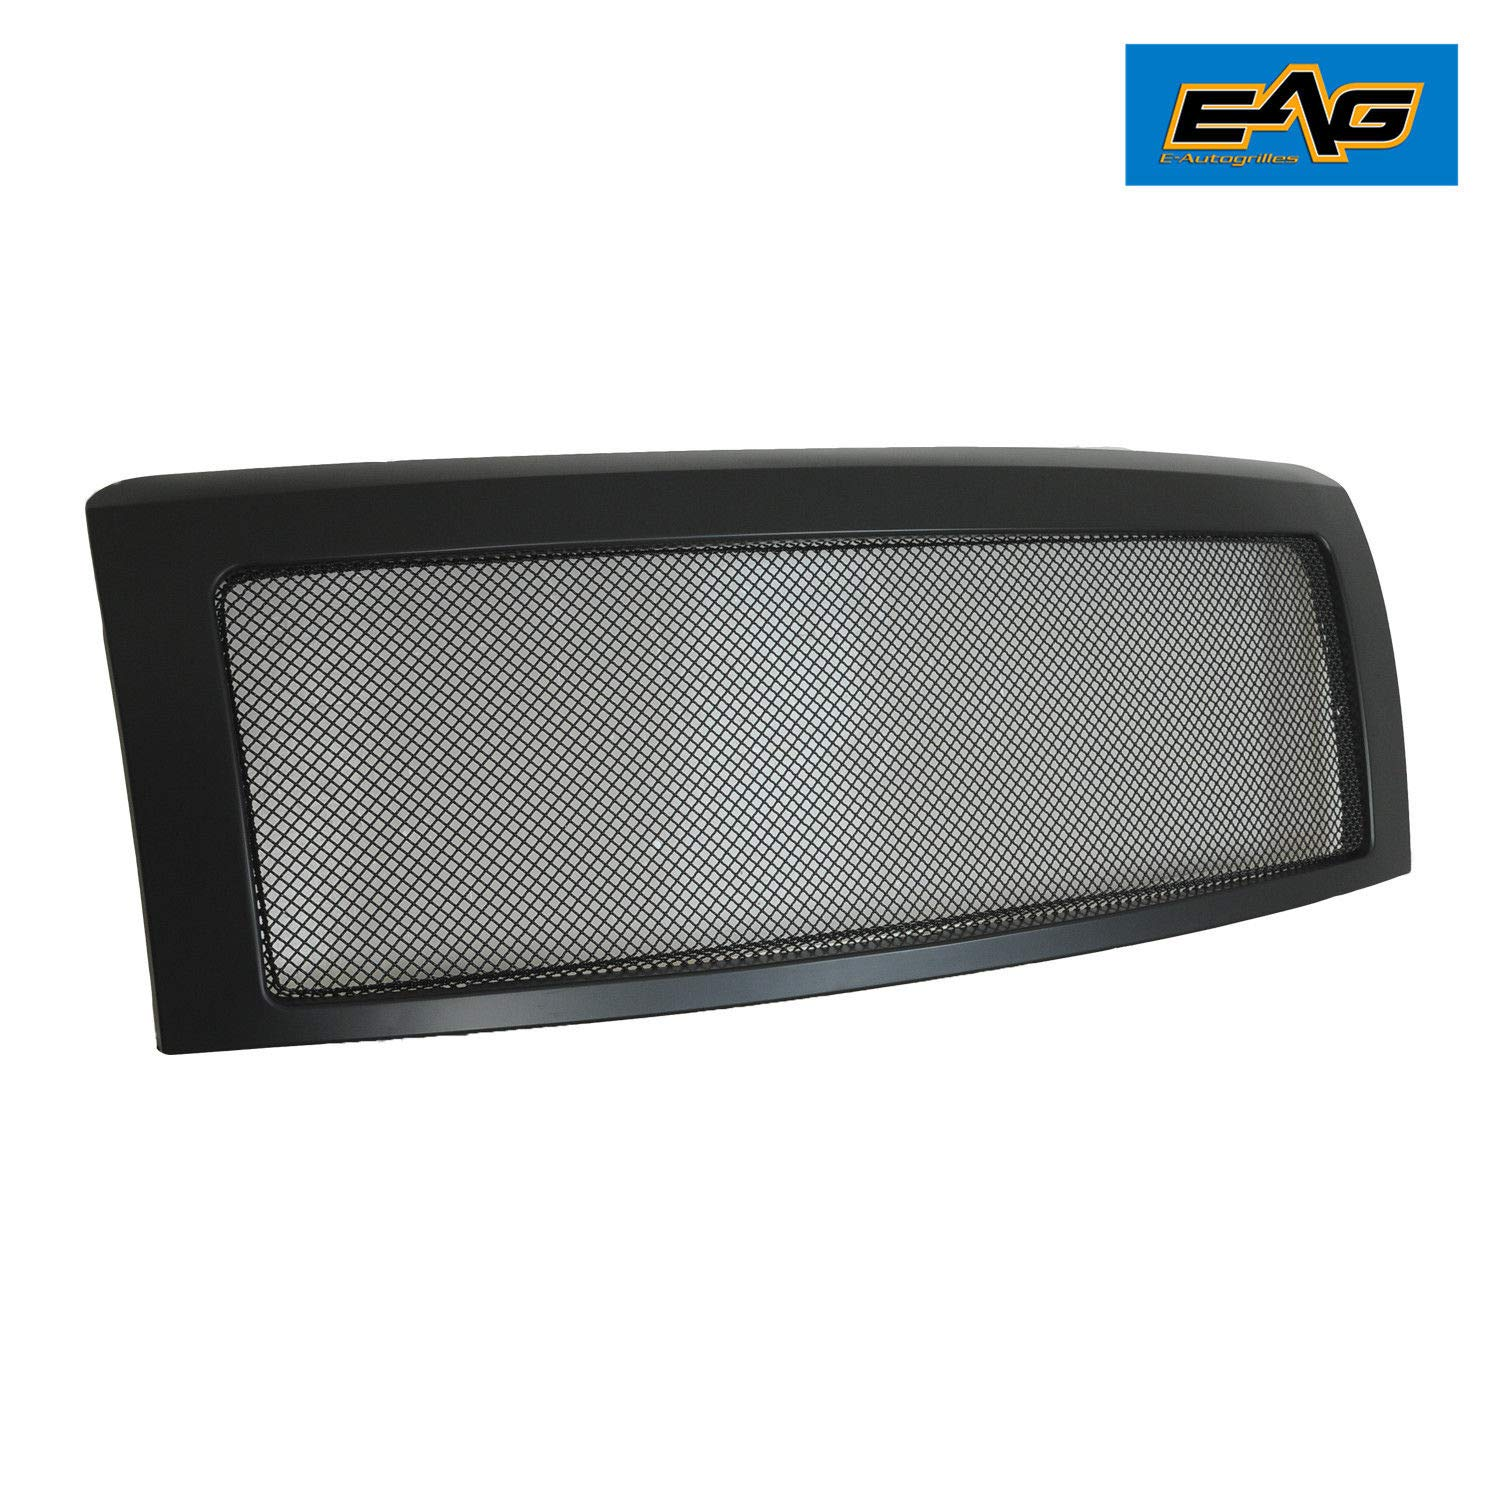 EAG Matte Black Replacement Grille Stainless Steel Mesh with ABS Shell Fit for 09-14 Ford F150